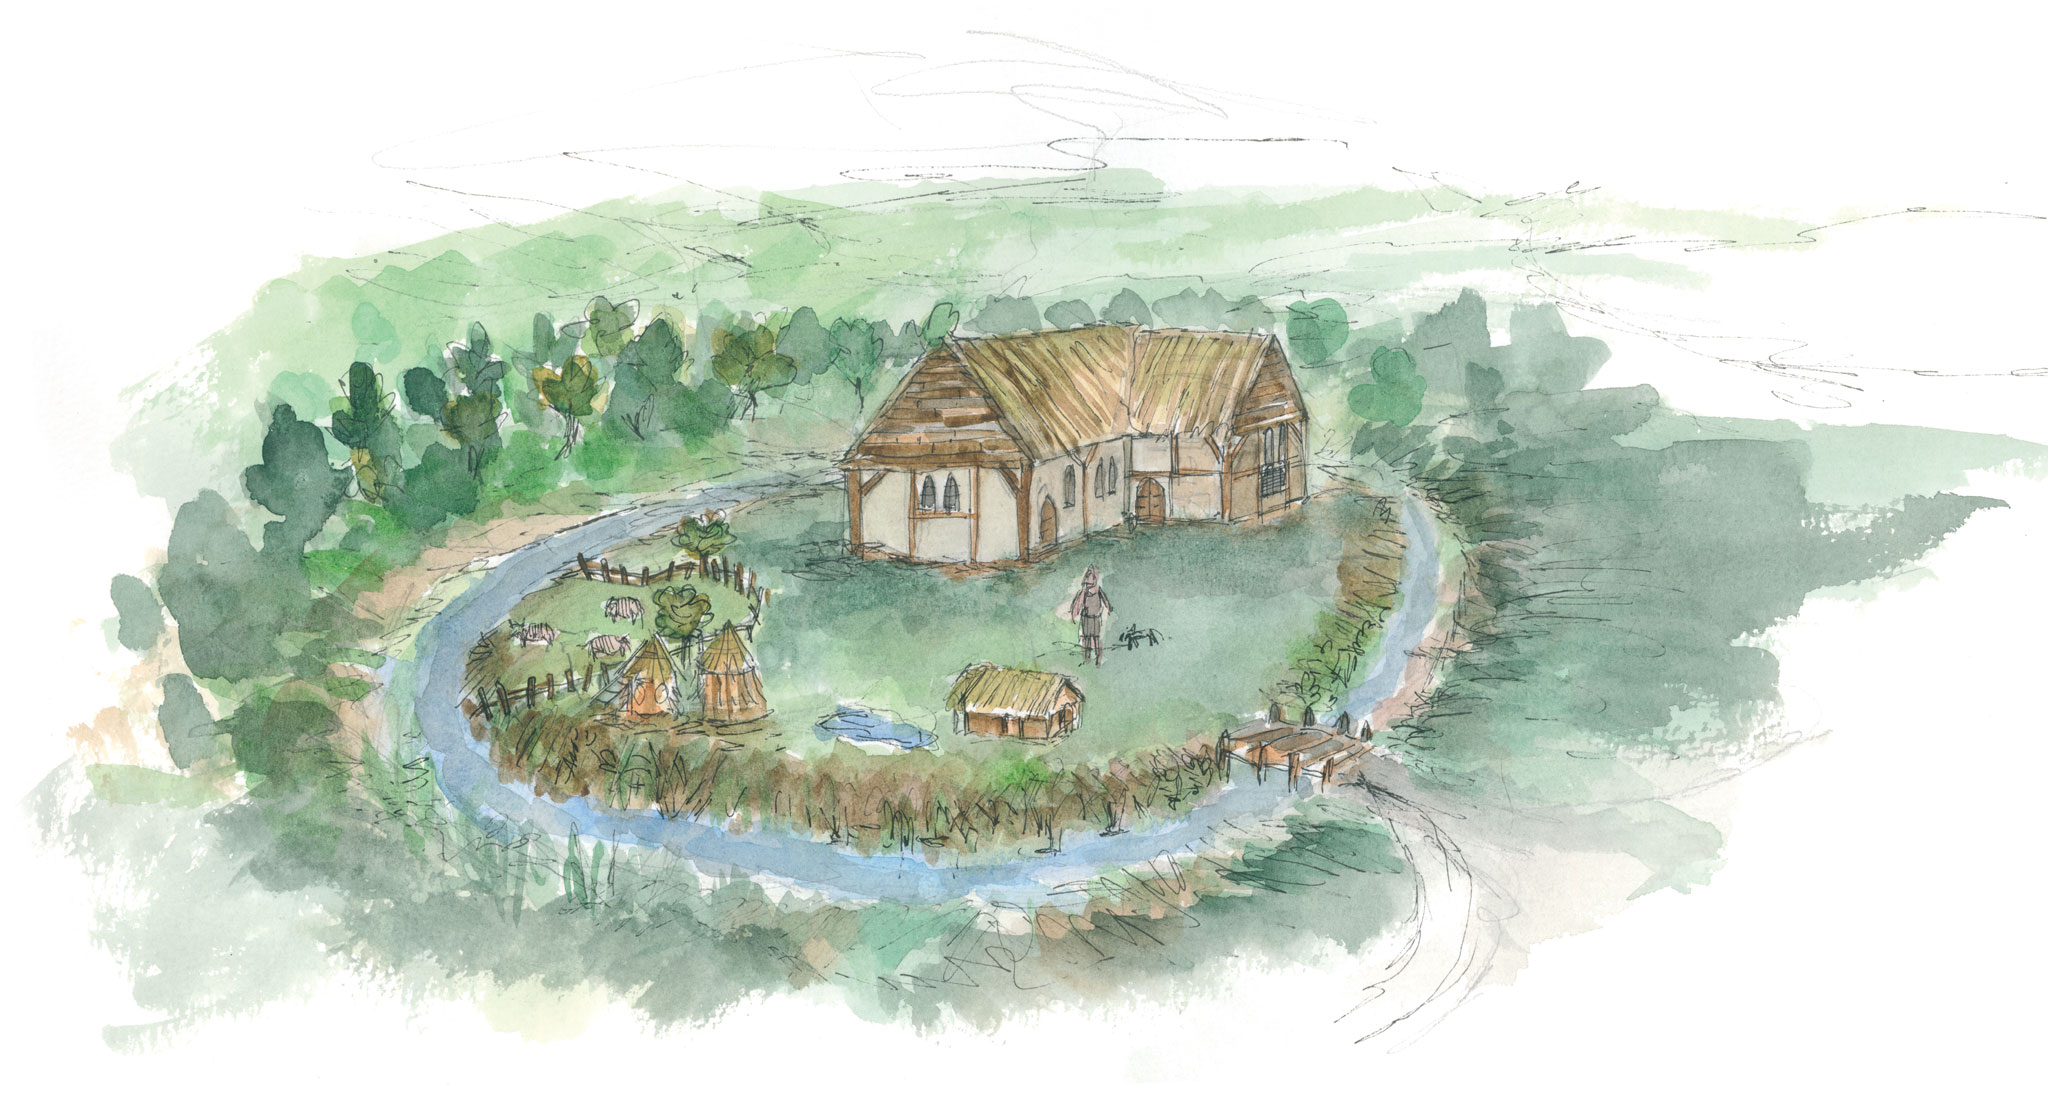 Painting of how the medieval moated site might have looked